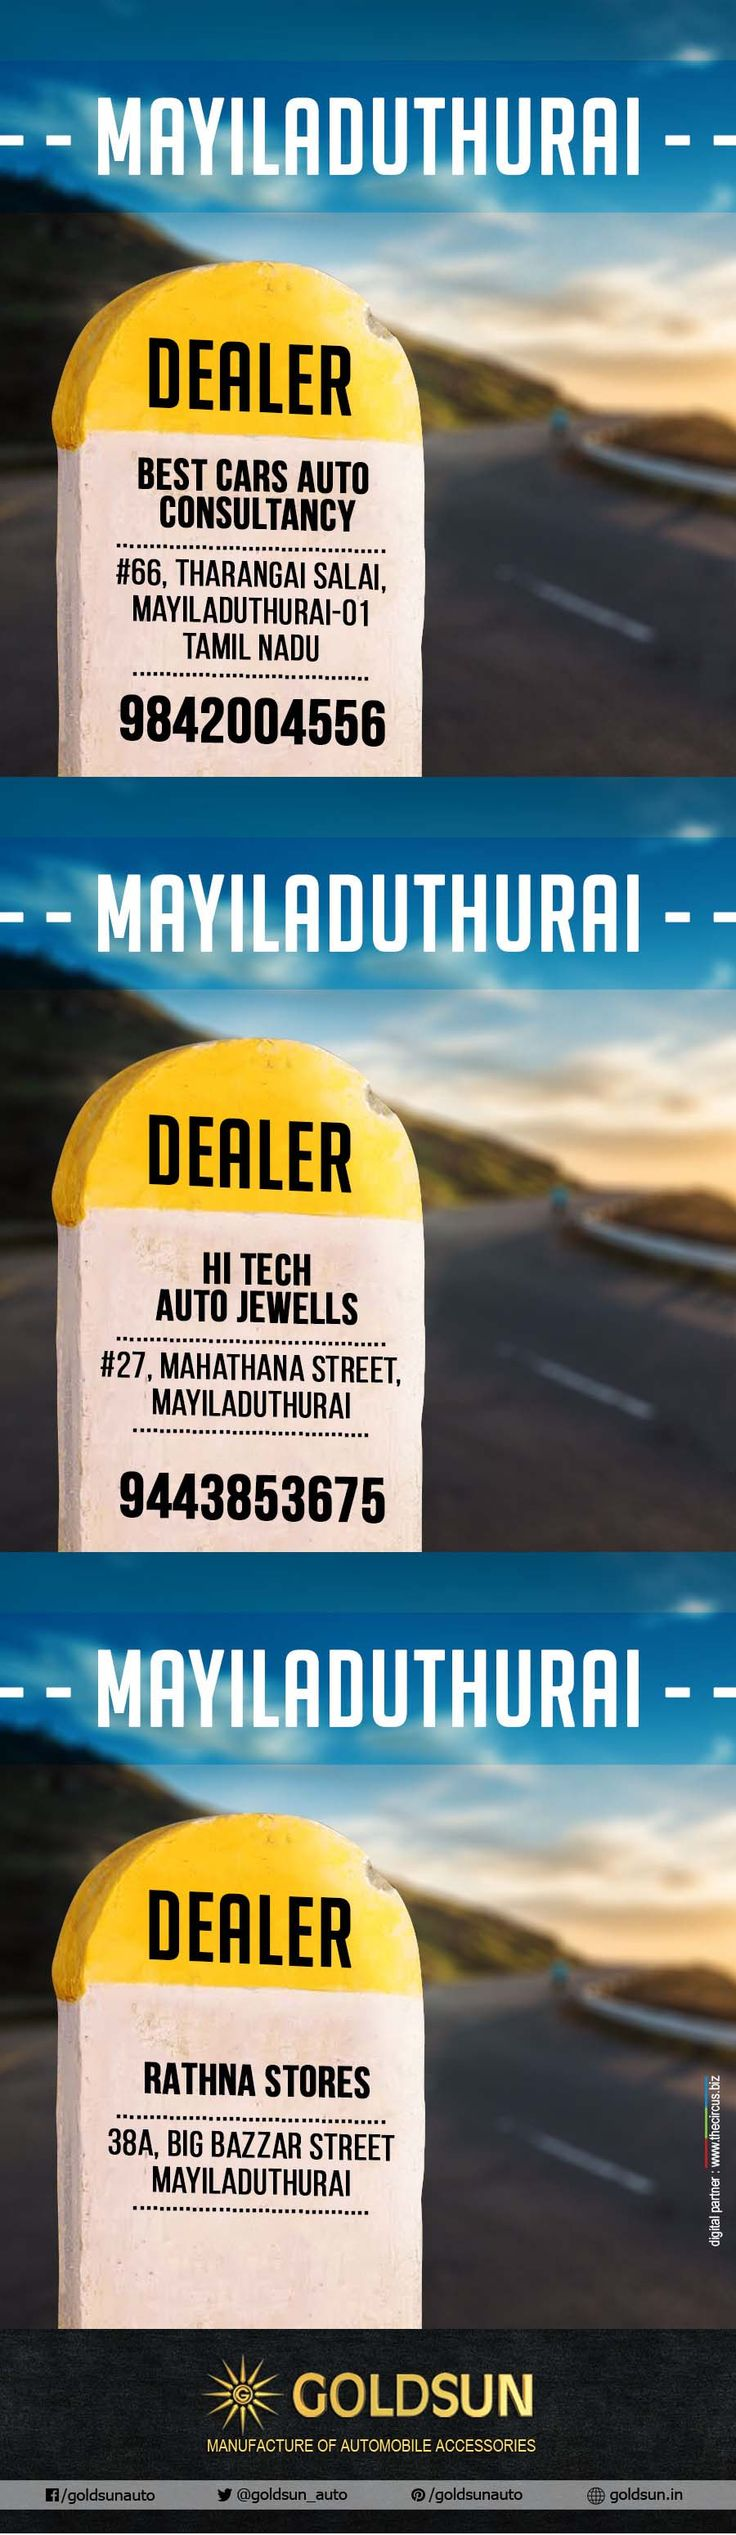 We, Goldsun provide #Automobile #Accessories #Bumper, #nudge_guard, #luggage_carrier, #side_steps for all #indian #cars. Find out our stylish accessories now at Mayiladuthuari ( Tamilnadu ).  For more details call : +91 93444 49111 Visit your nearest Automobile #Accessory store or www.goldsun.in   #dealers #goldsun #mayiladuthurai